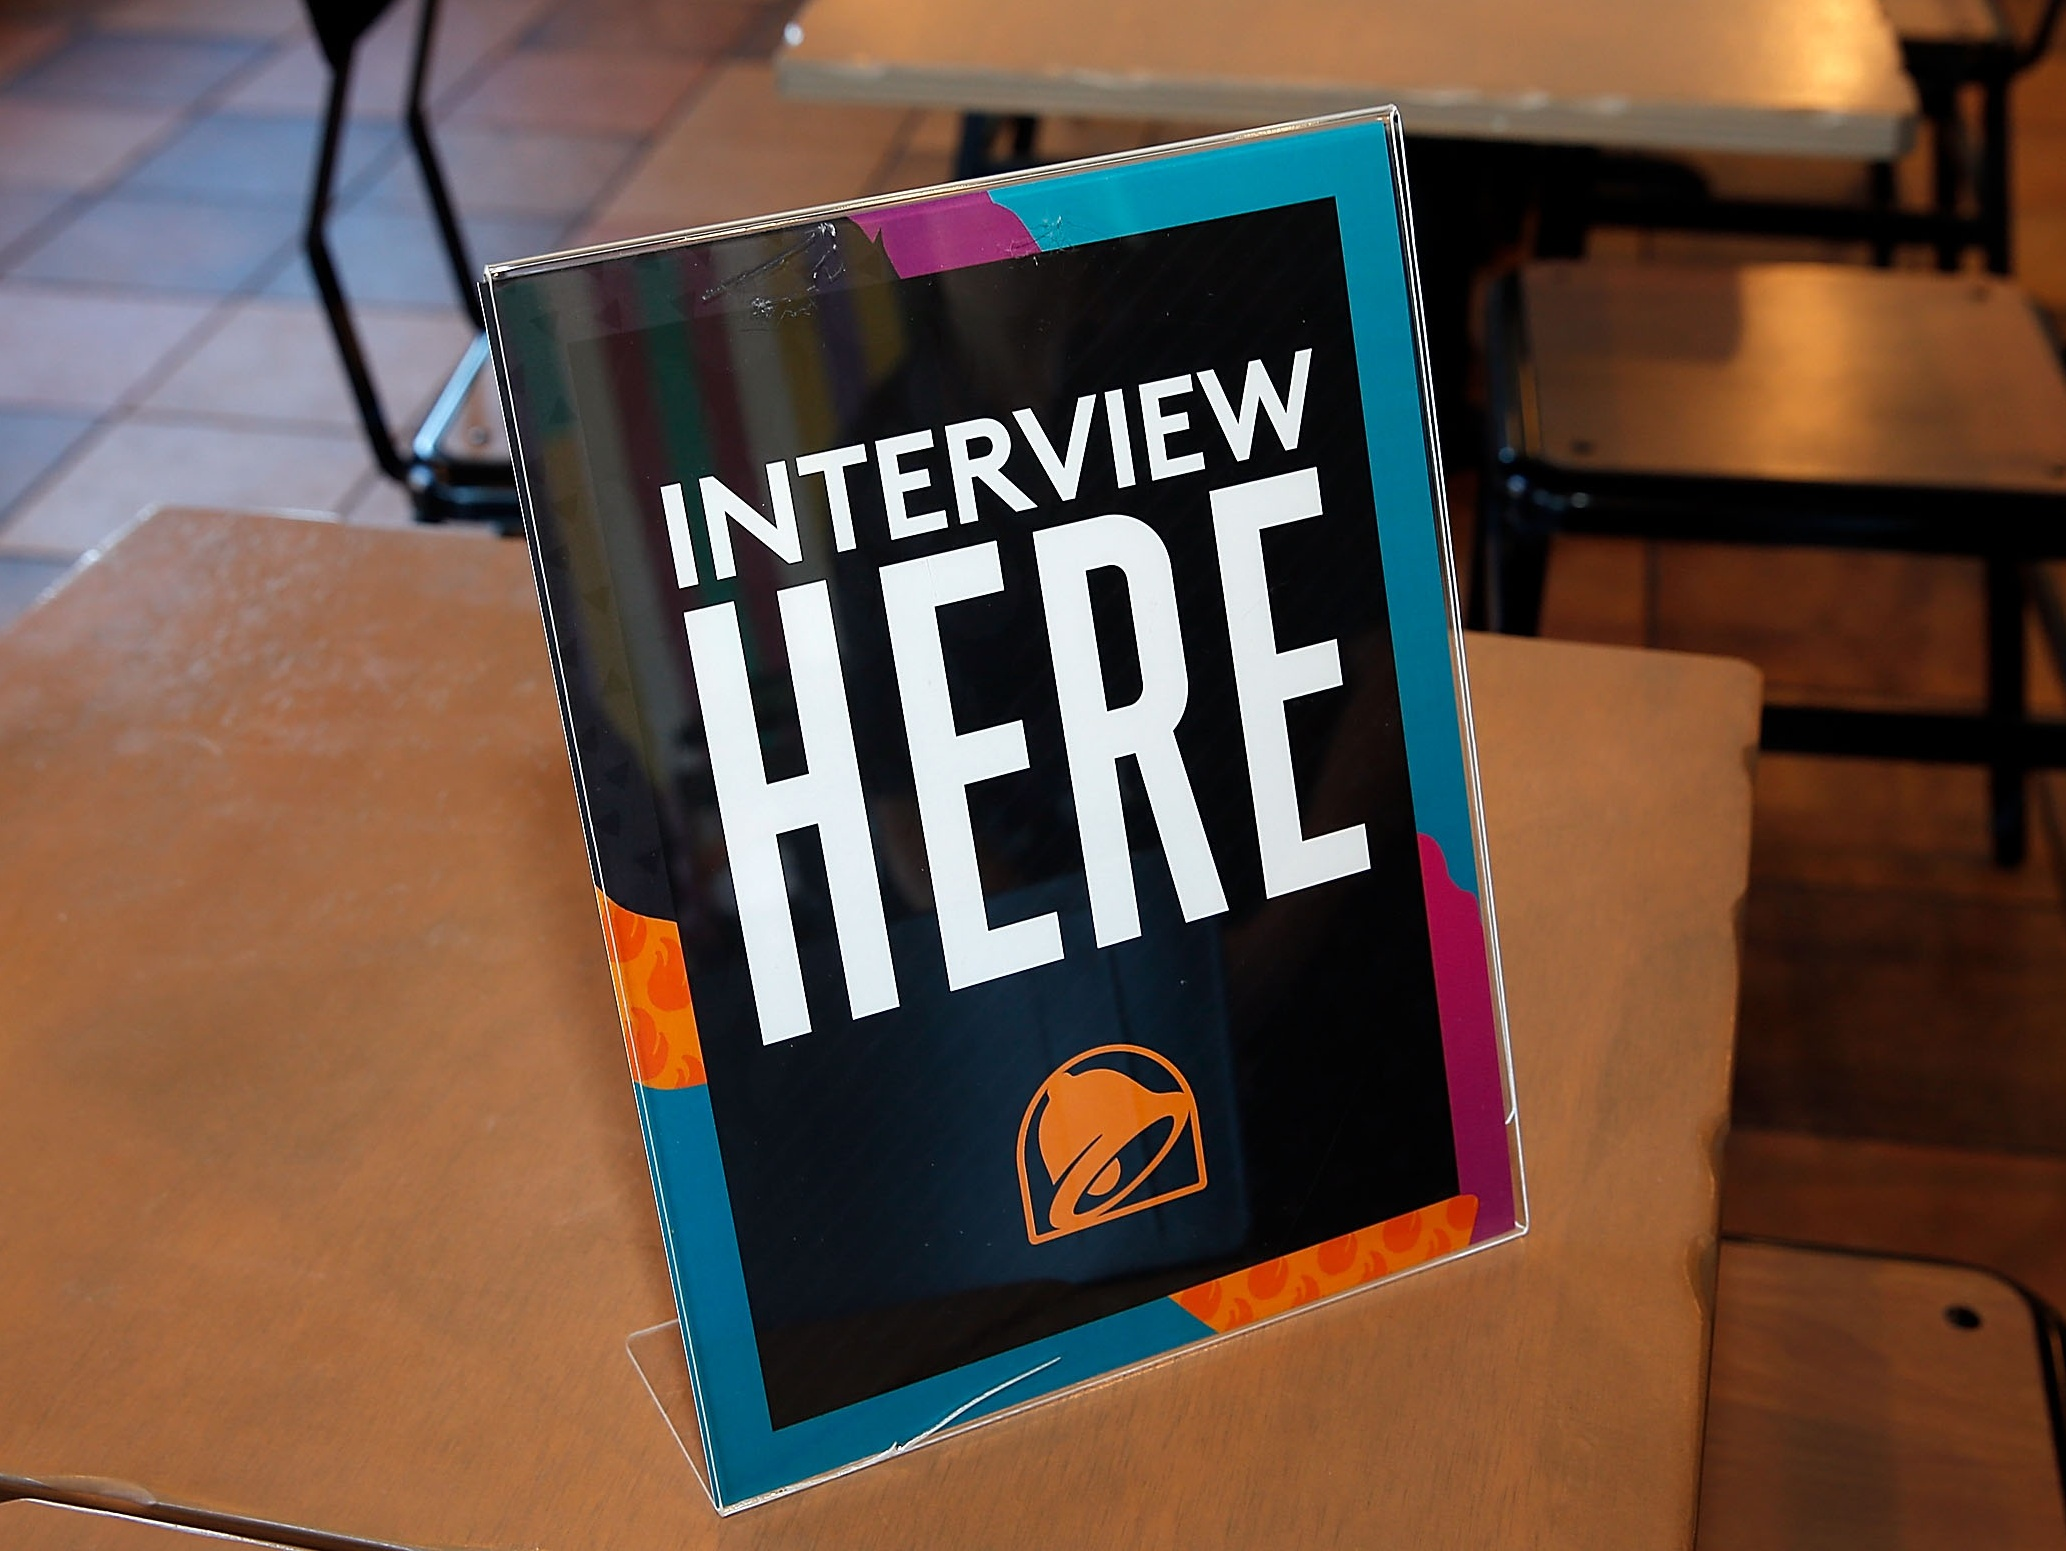 Small Business Banking >> Taco Bell invites potential employees to party | SmartBrief